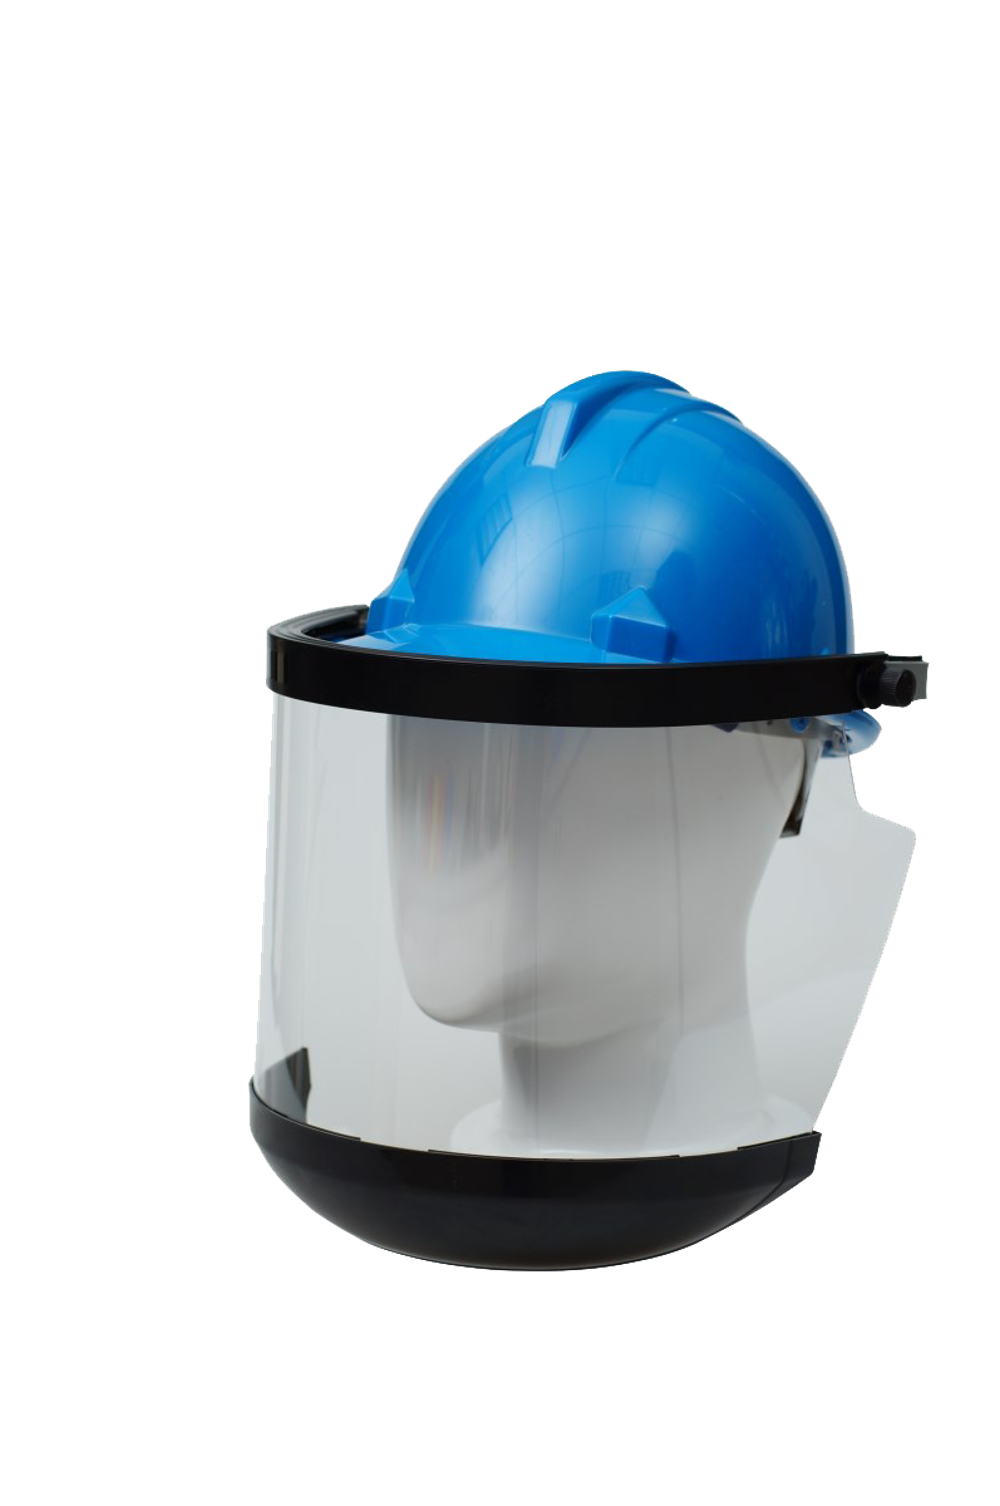 Solar Powered Heat Protection Face Shield Blue Eagle Auto Welding Helmet